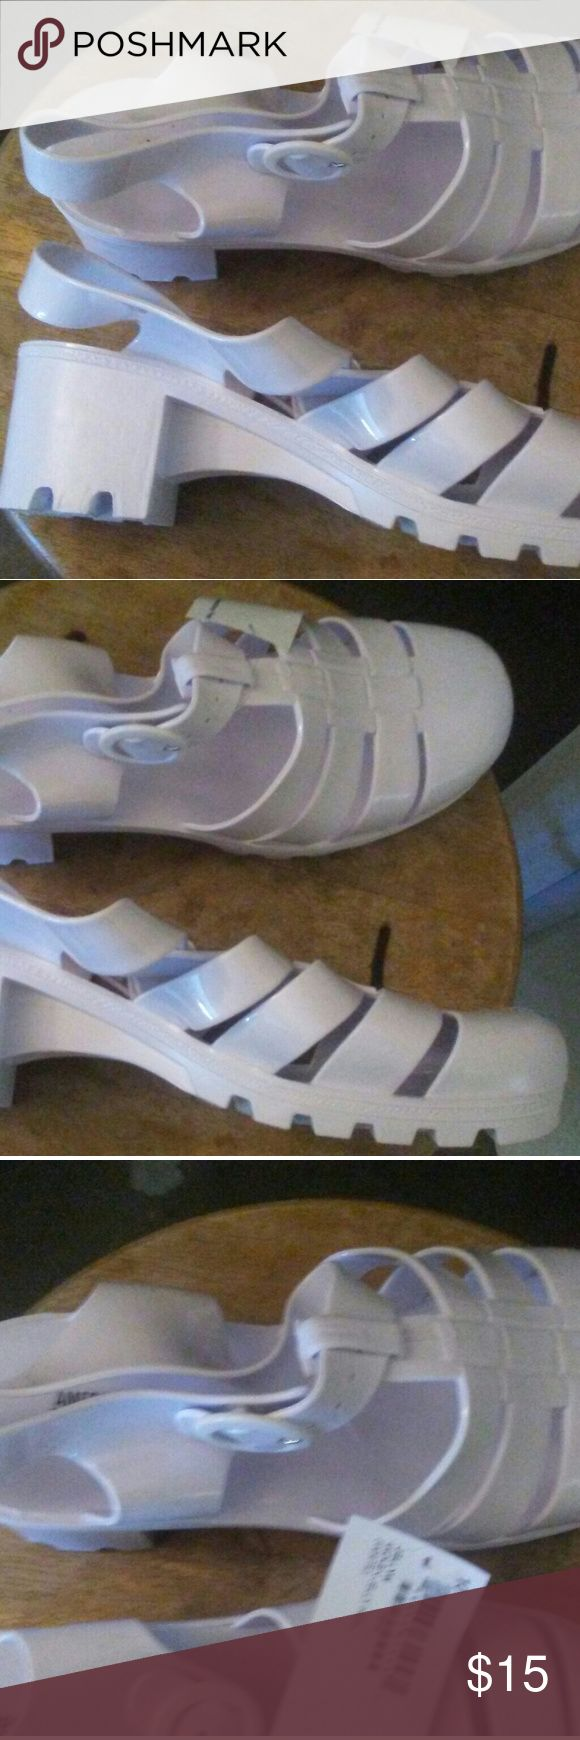 Black jelly sandals american apparel - White Jelly Sandals Hi Heel American Apparel Block Heel White Jelly Sandals